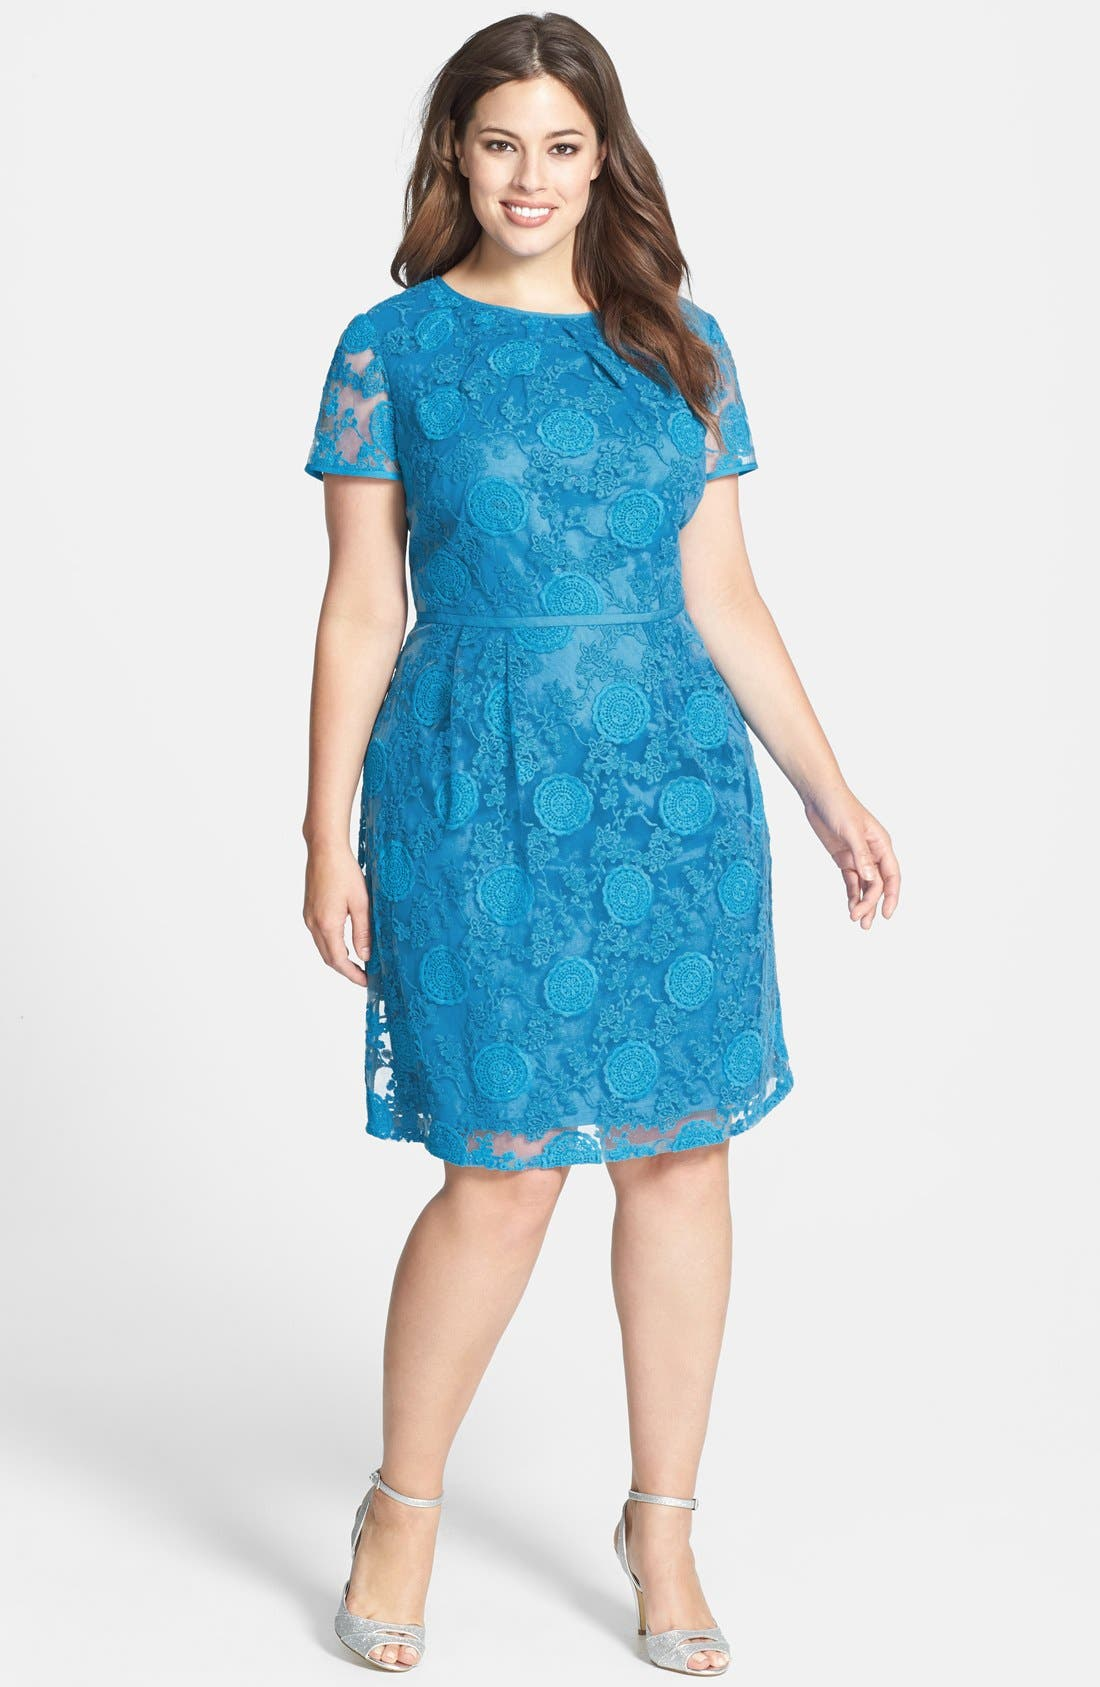 Main Image - Adrianna Papell 'Pleats' Lace Dress (Plus Size)